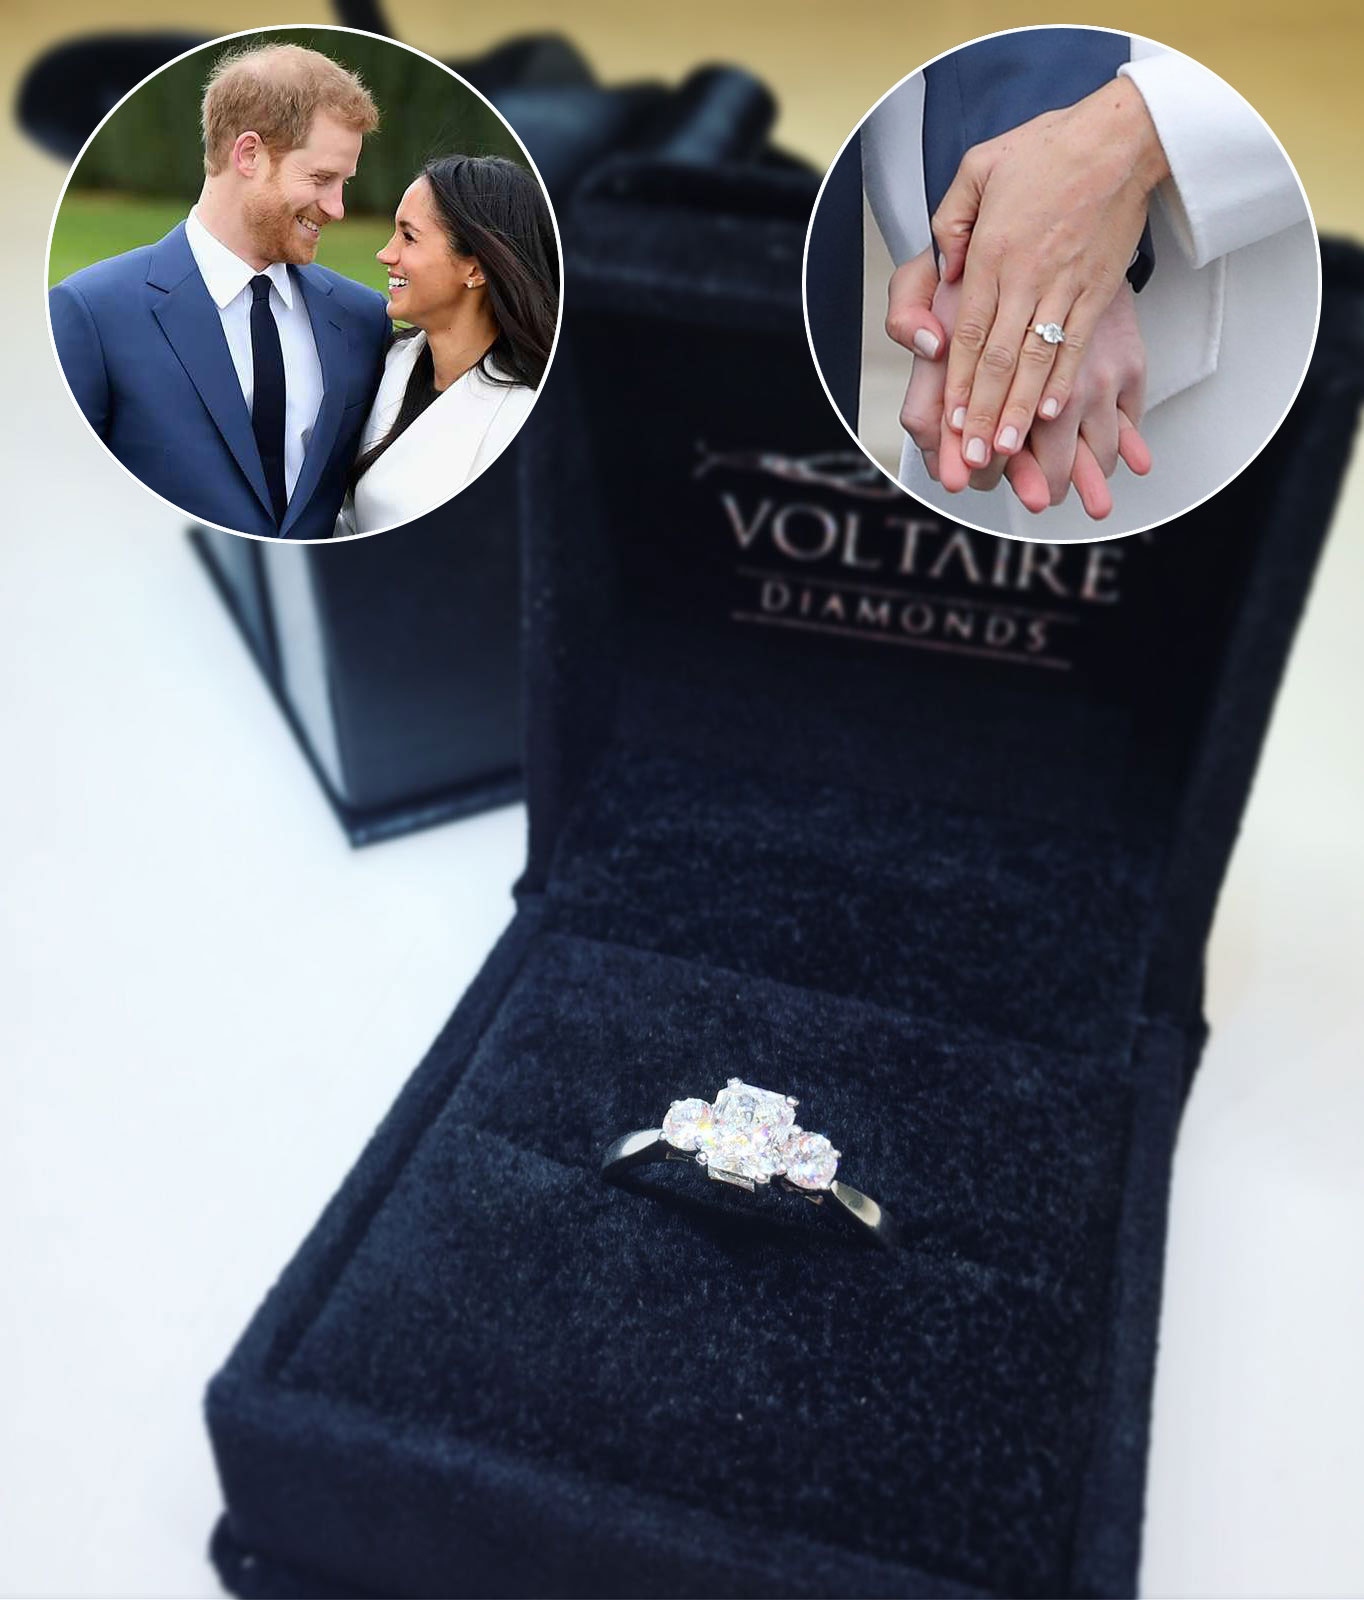 Prince Harry proposes to Meghan Markle with Stunning Engagement Ring